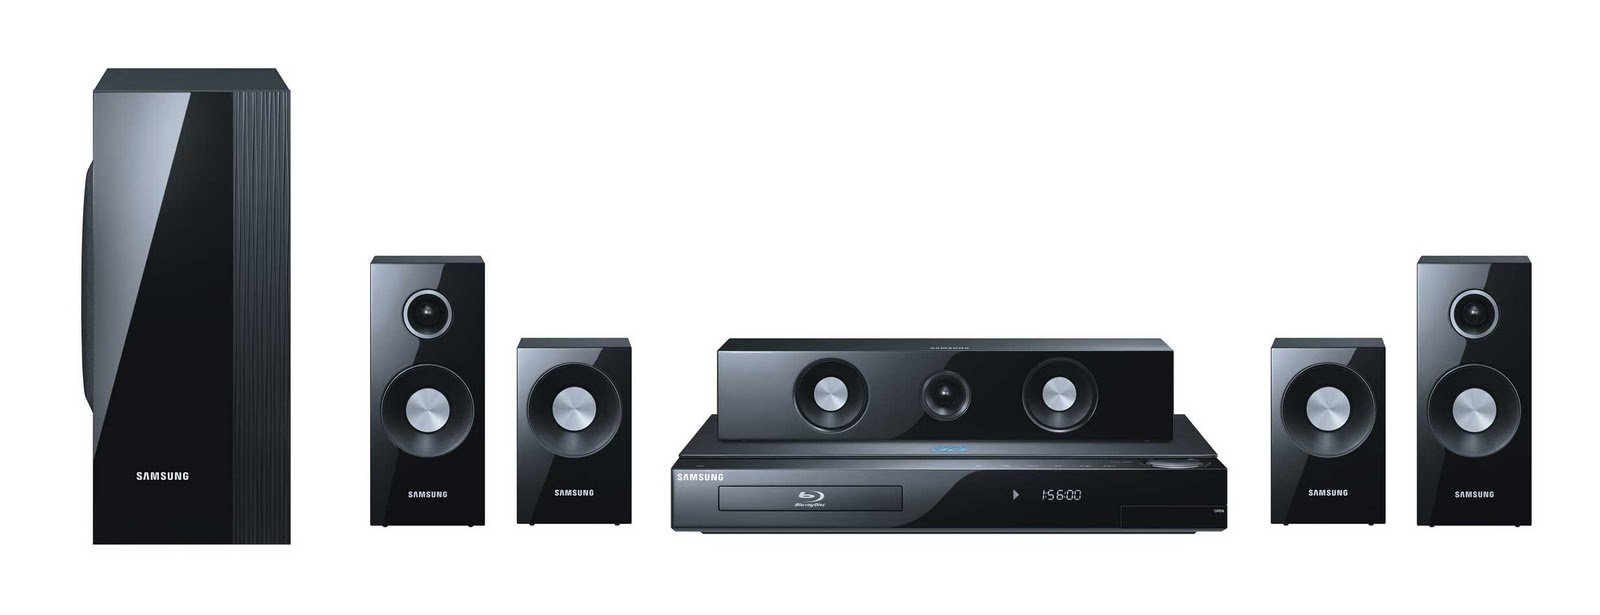 Samsung 3D Bluray Surround Sound System